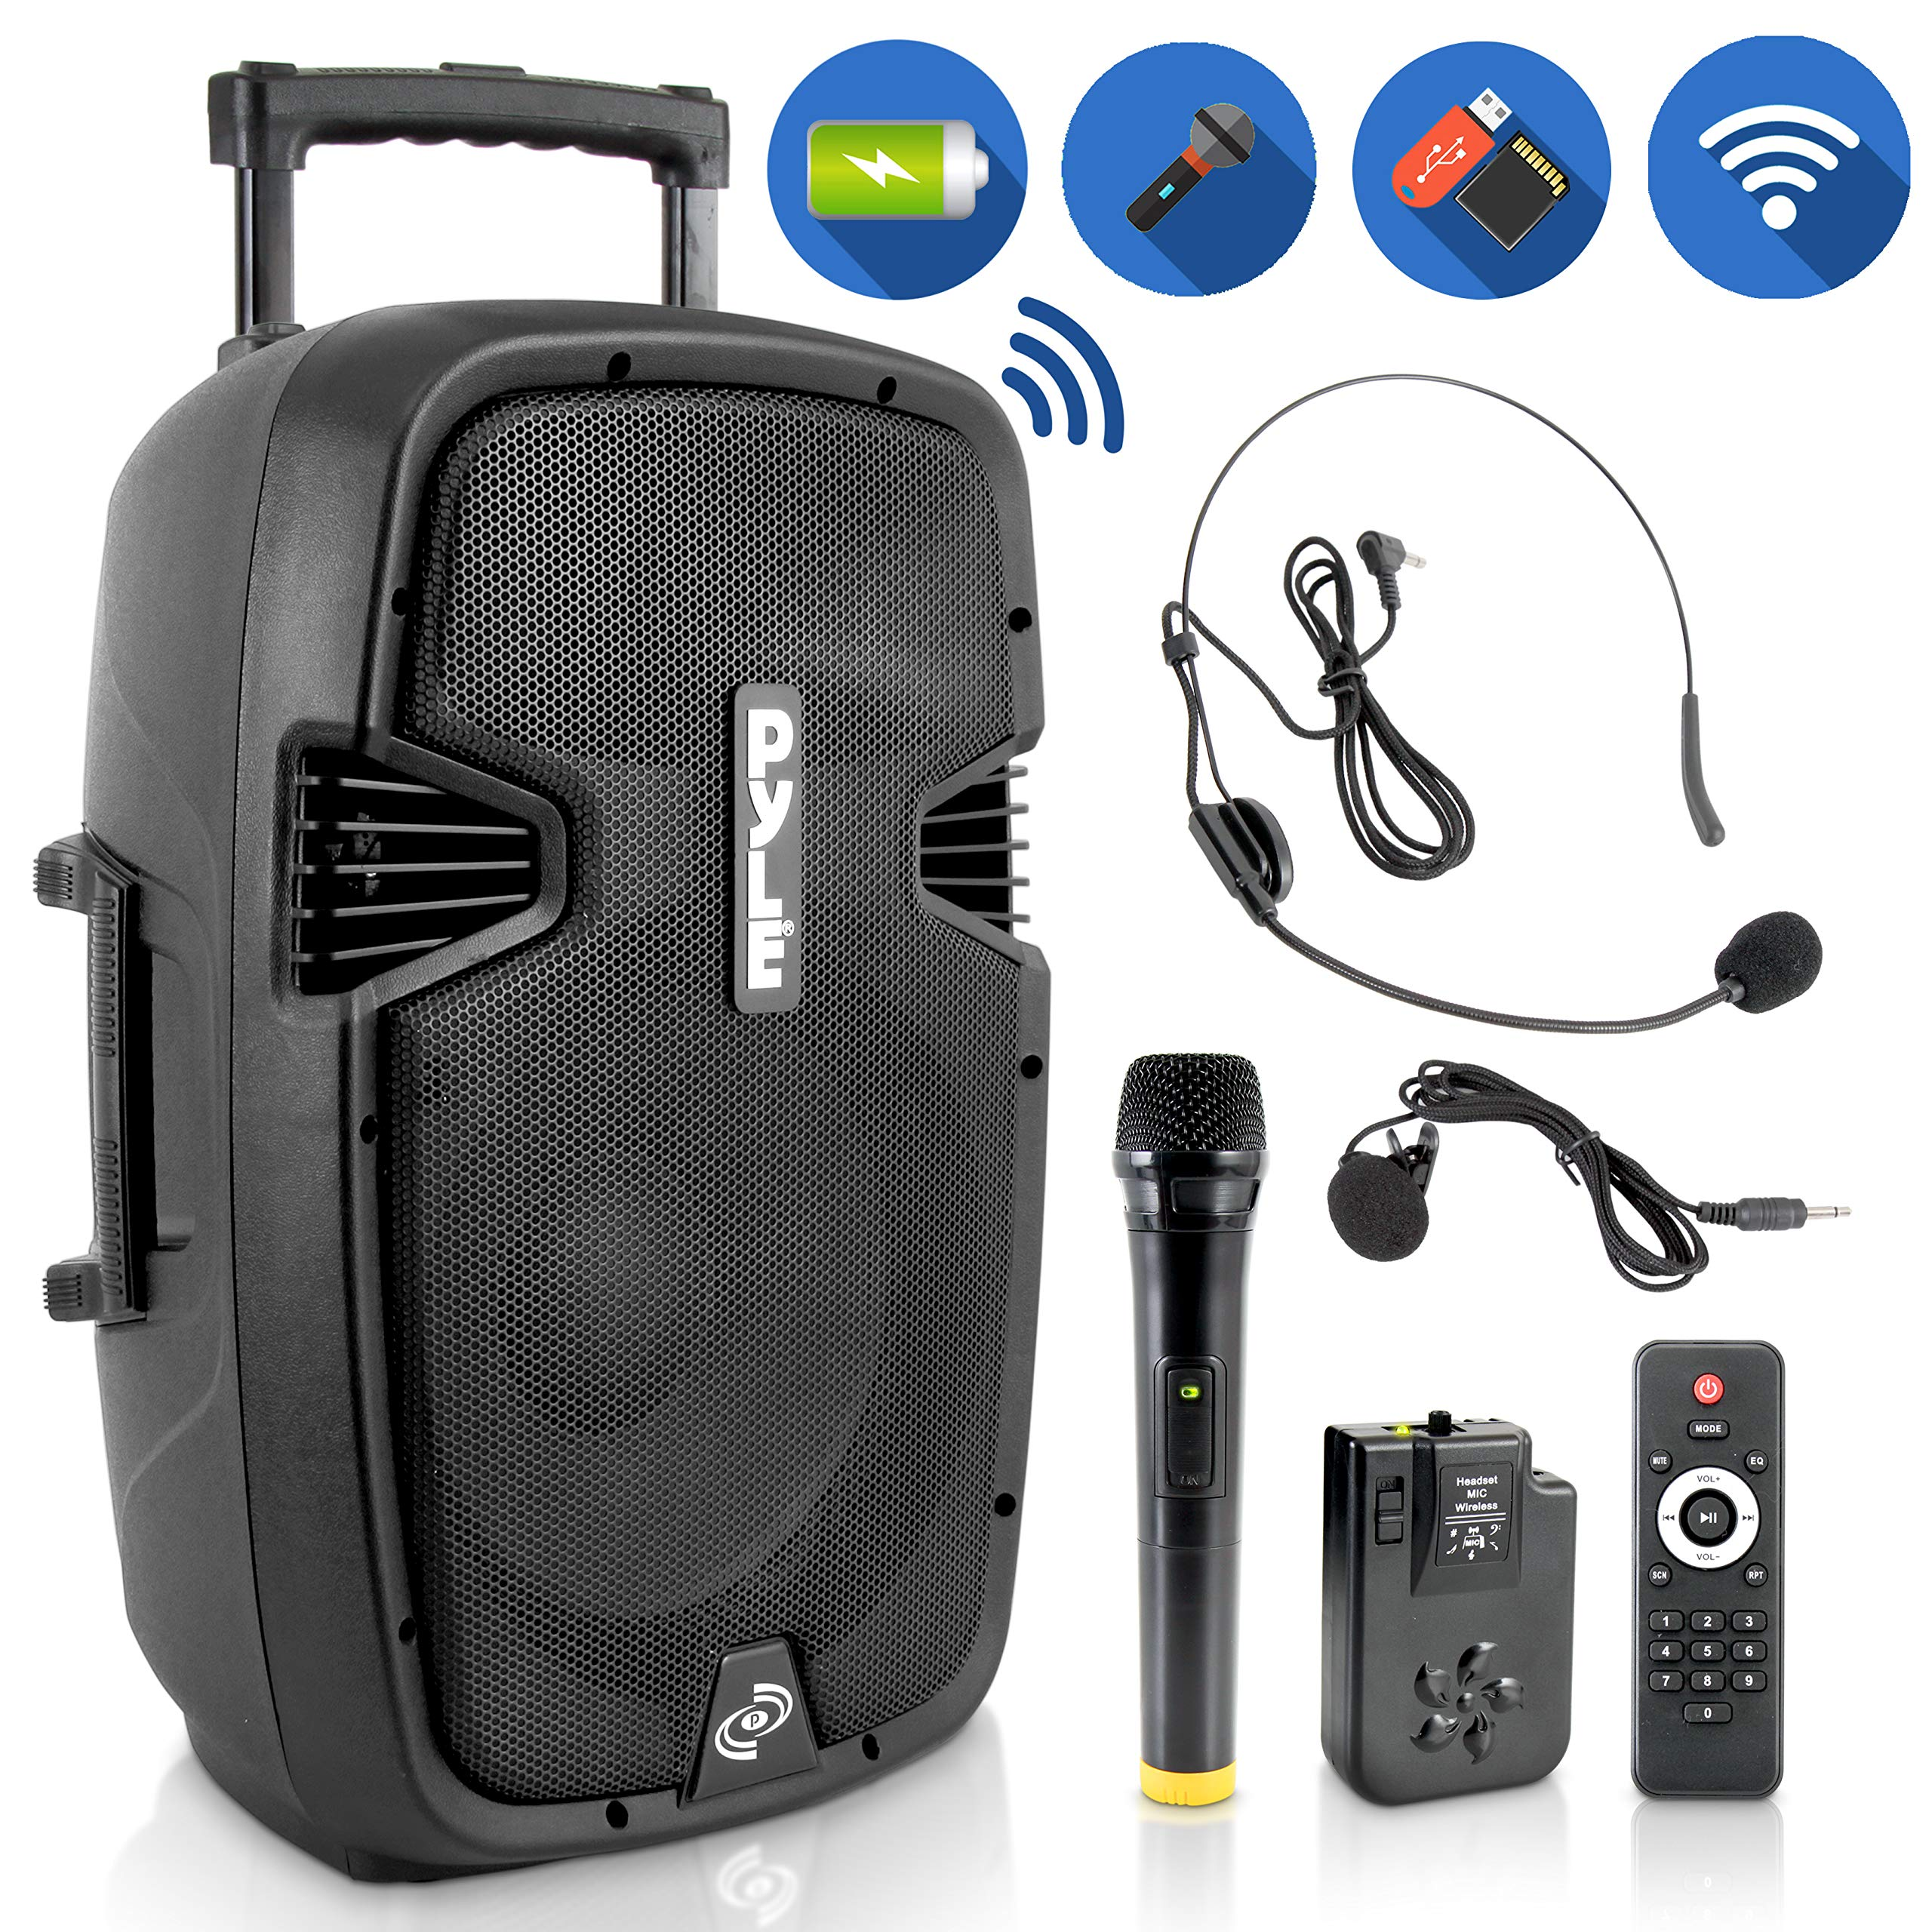 Wireless Portable PA Speaker System - Compatible with Bluetooth, Active Loudspeaker, 1000 Watt Powered 2-Way Waterproof Amplifier, 12'' Subwoofer, Tweeter, RCA, XLR, Mic In for Dj & Party - PPHP1241WMU